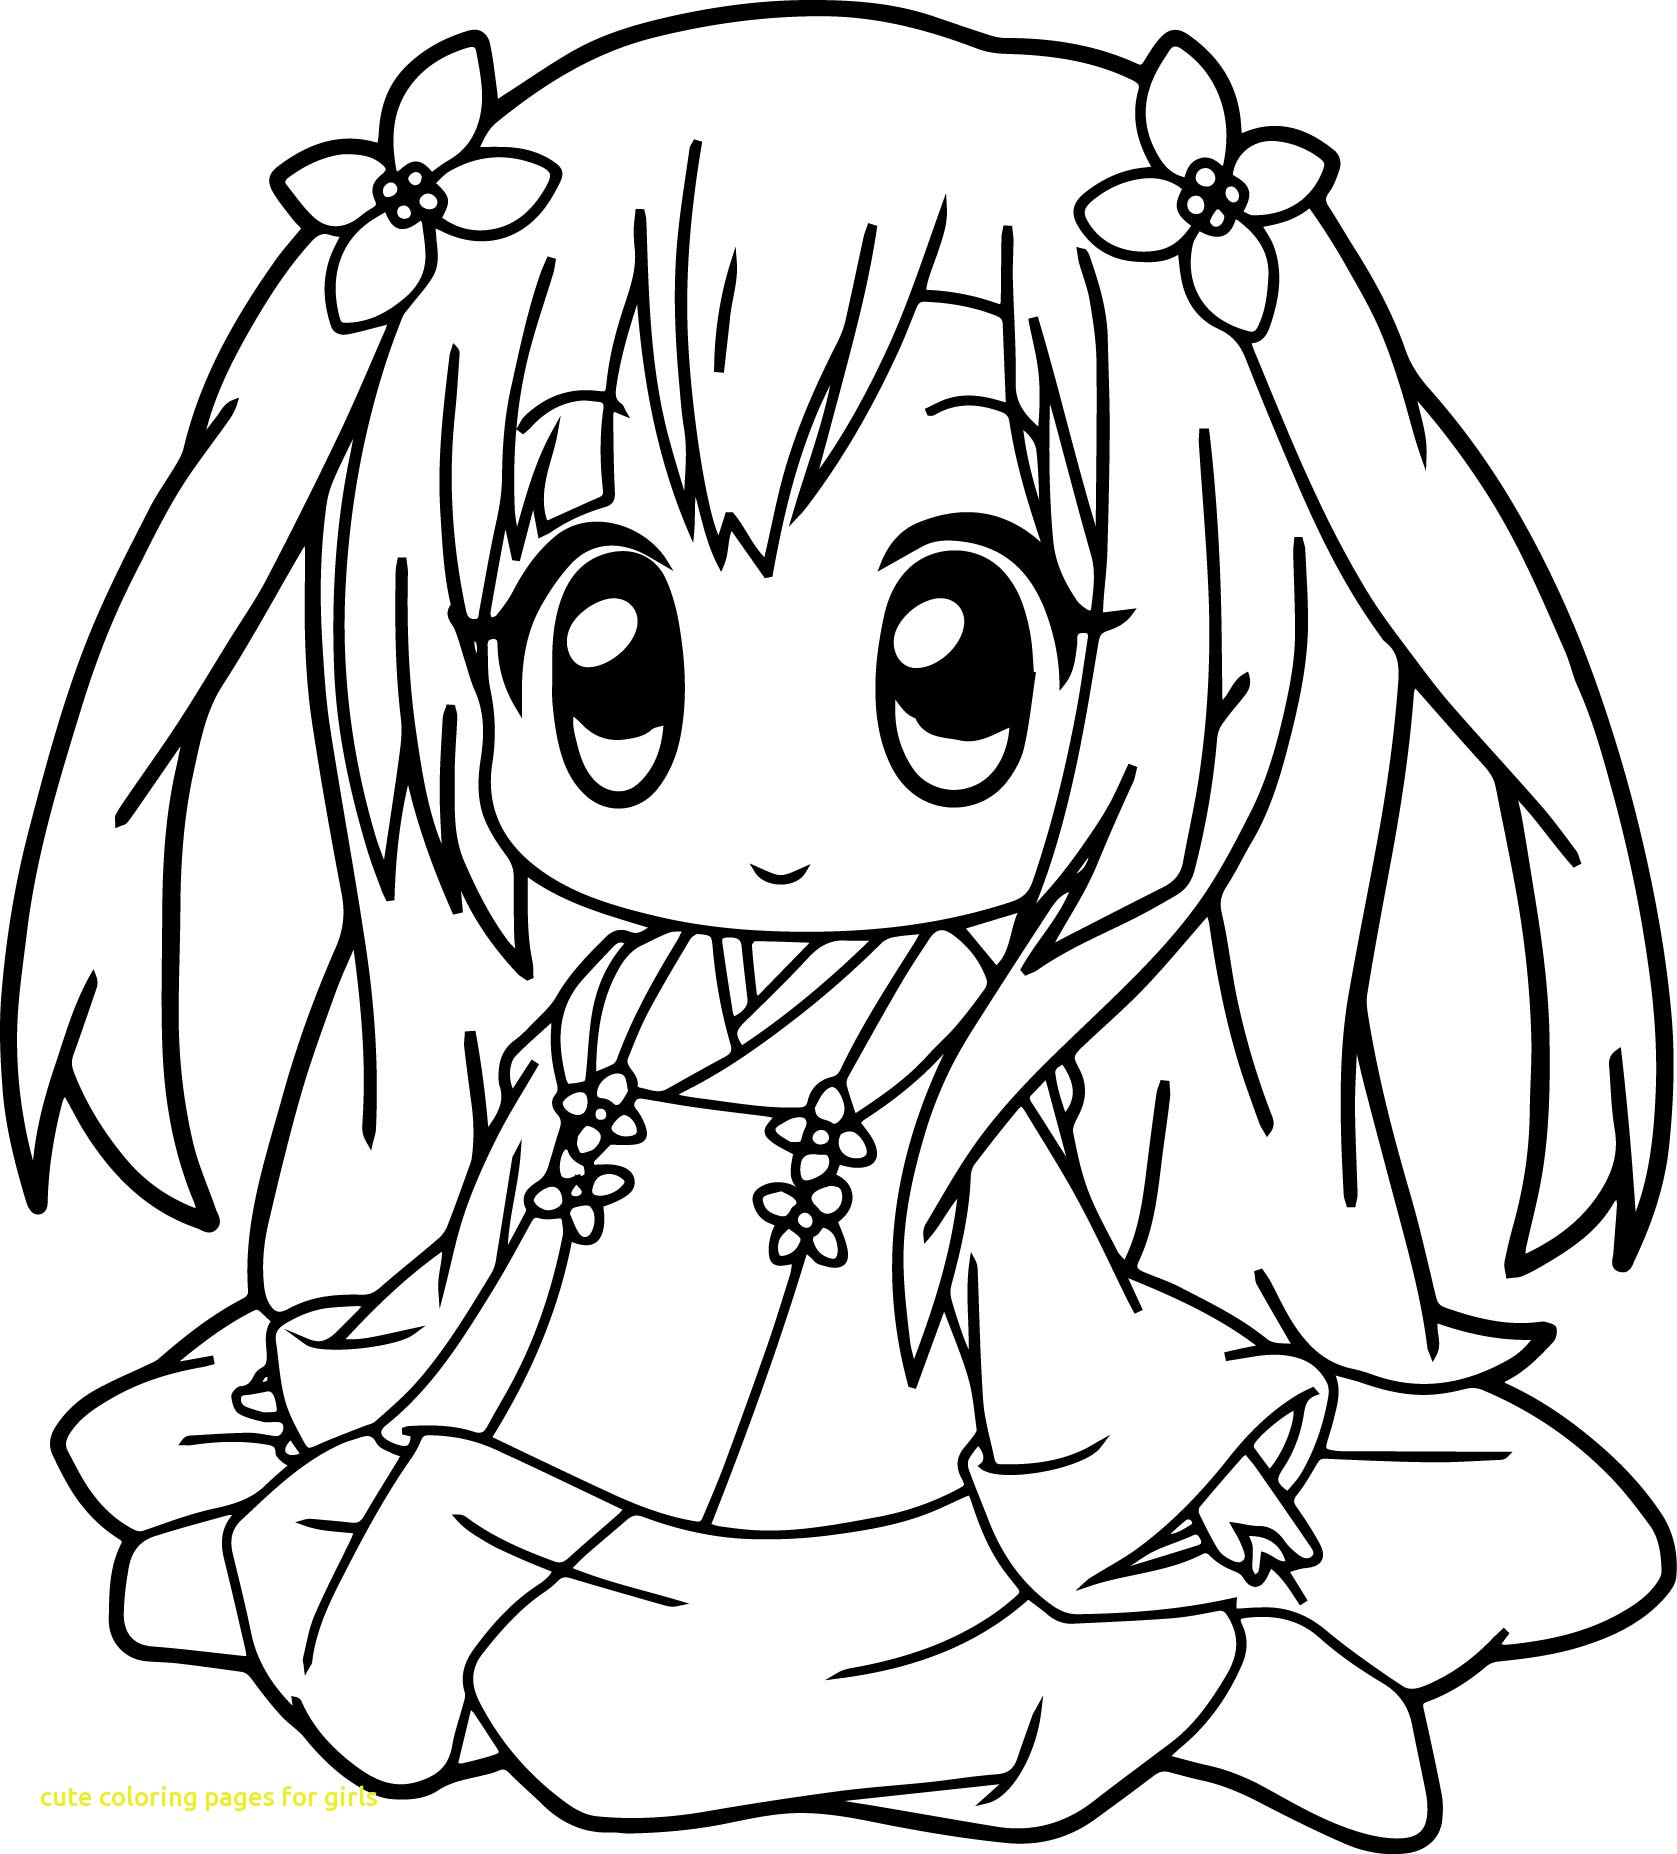 Expert Cute Coloring Anime Pages 5 99 Unknown to Print Of Cute Coloring Pages for Girls Printable Kids Colouring Pages Kids Gallery